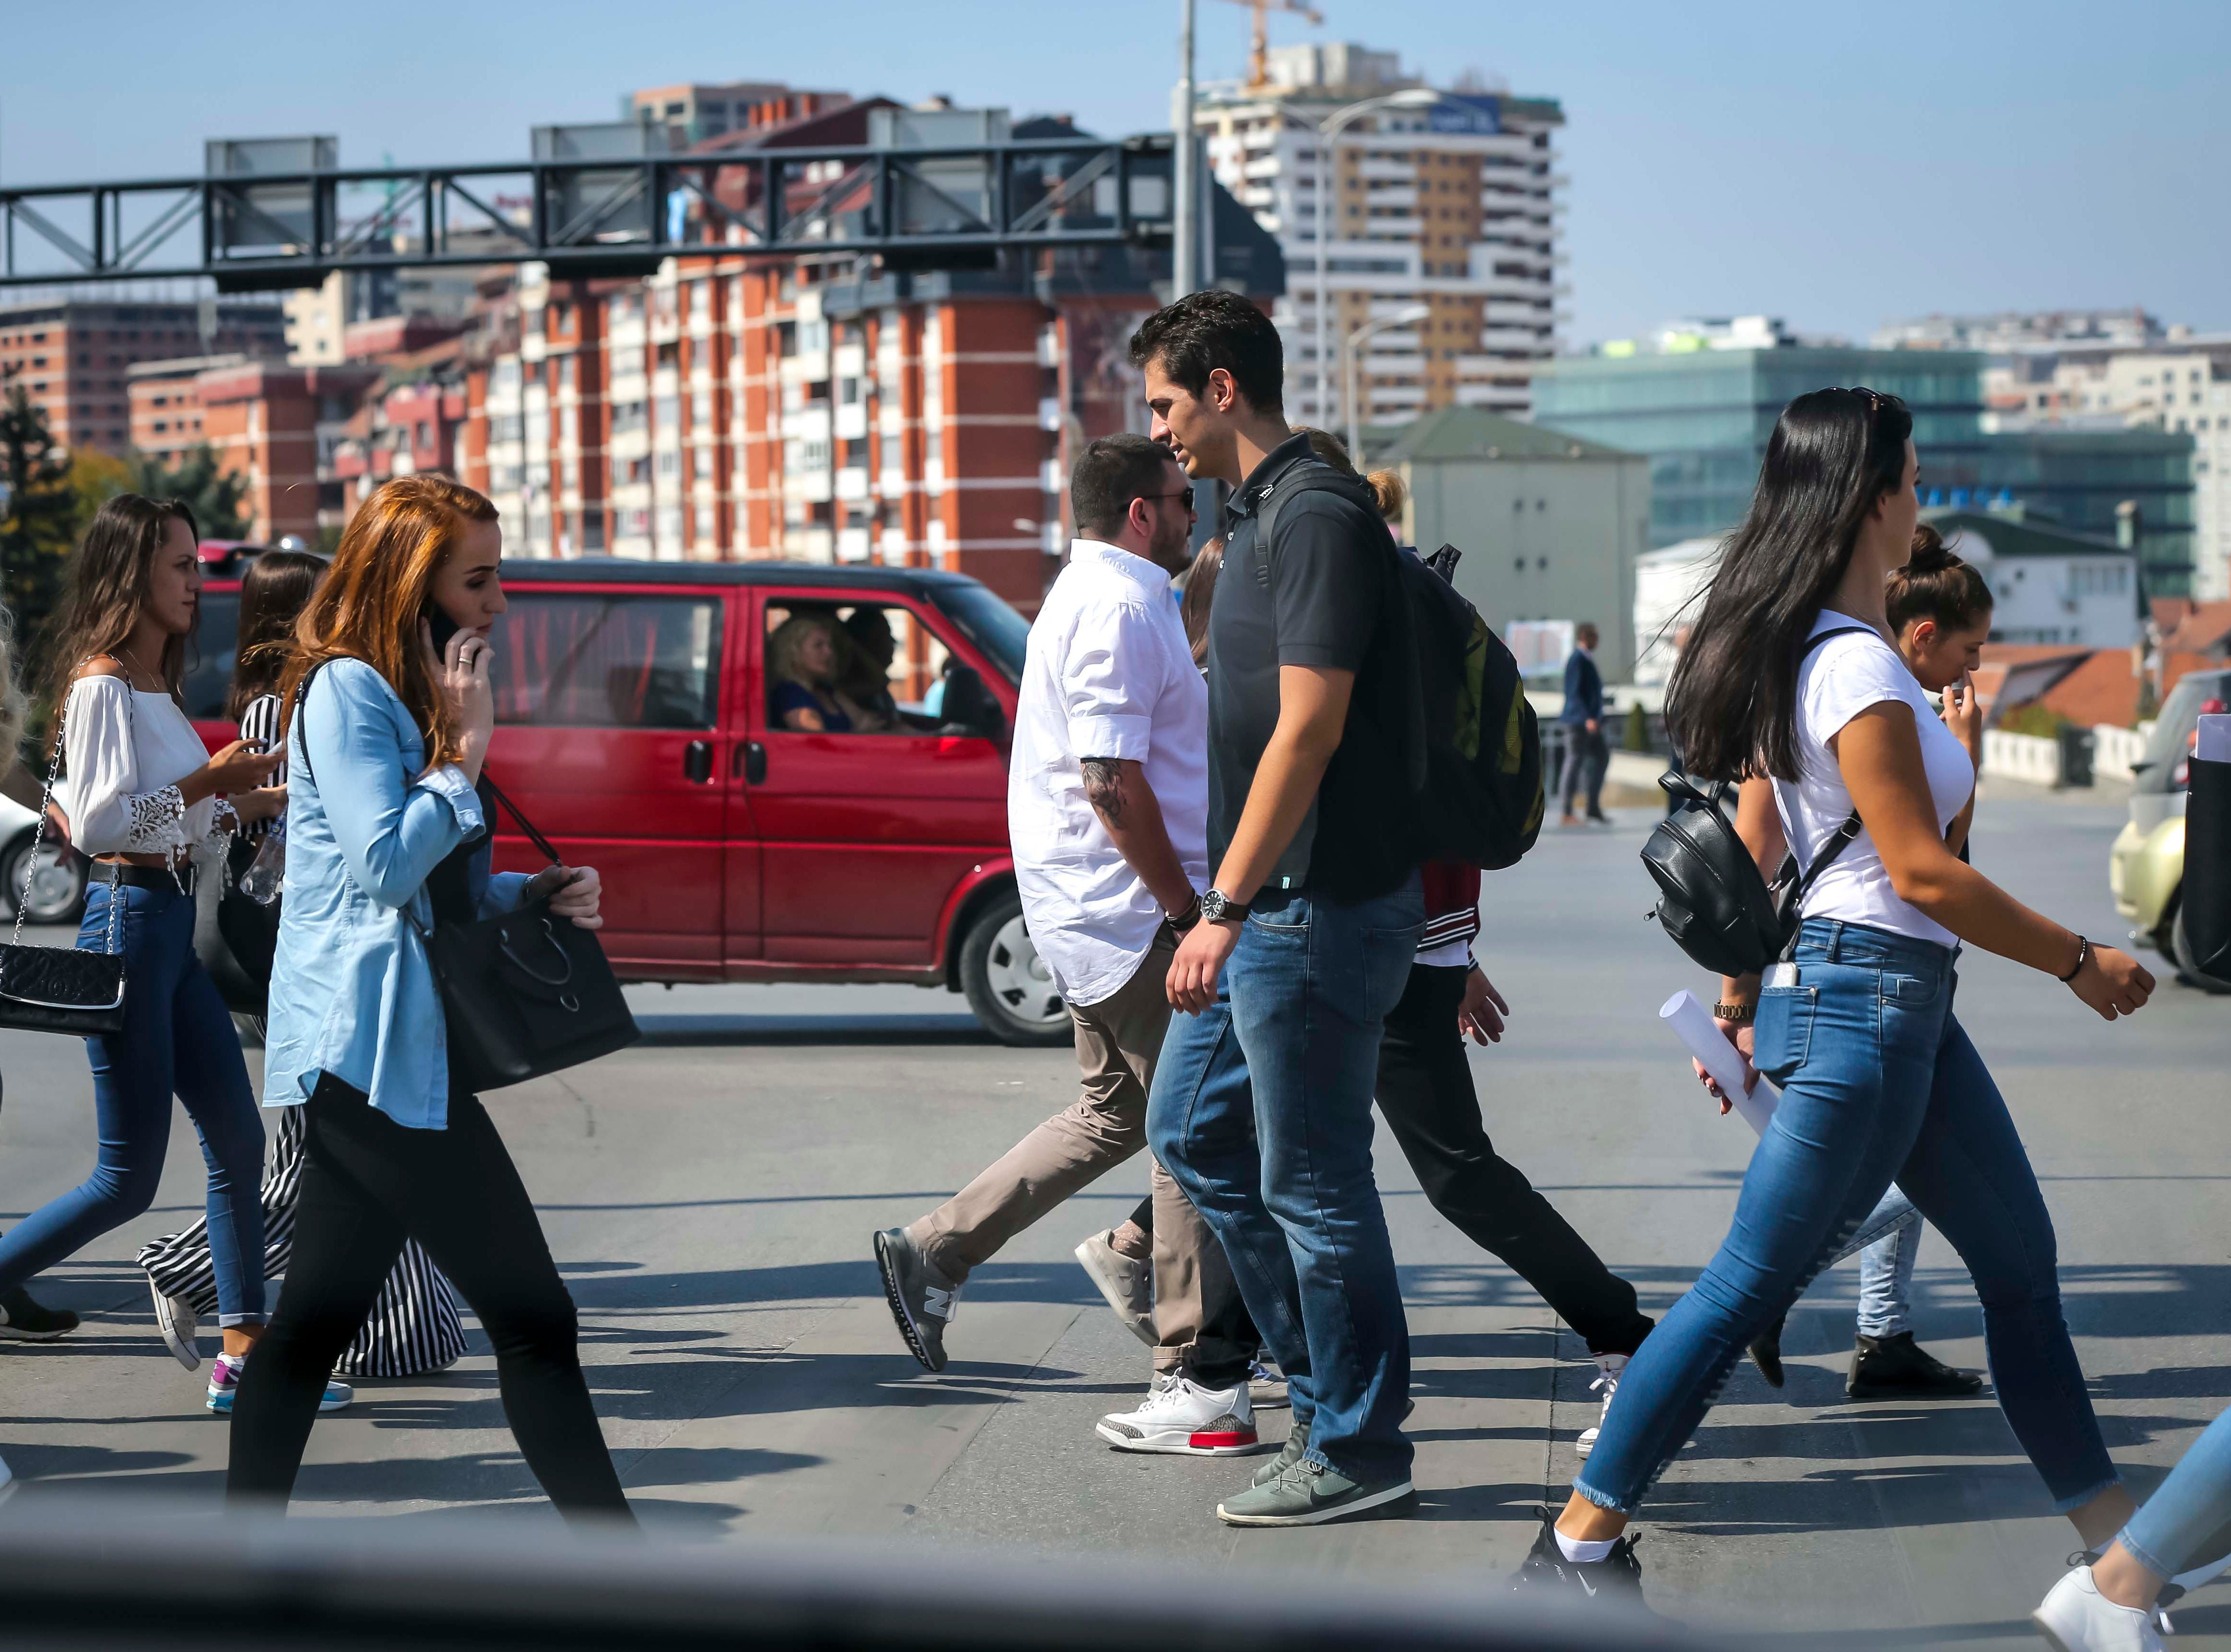 Pedestrians cross the street in Pristina, the capital of Kosovo, with a population of over 200,000.